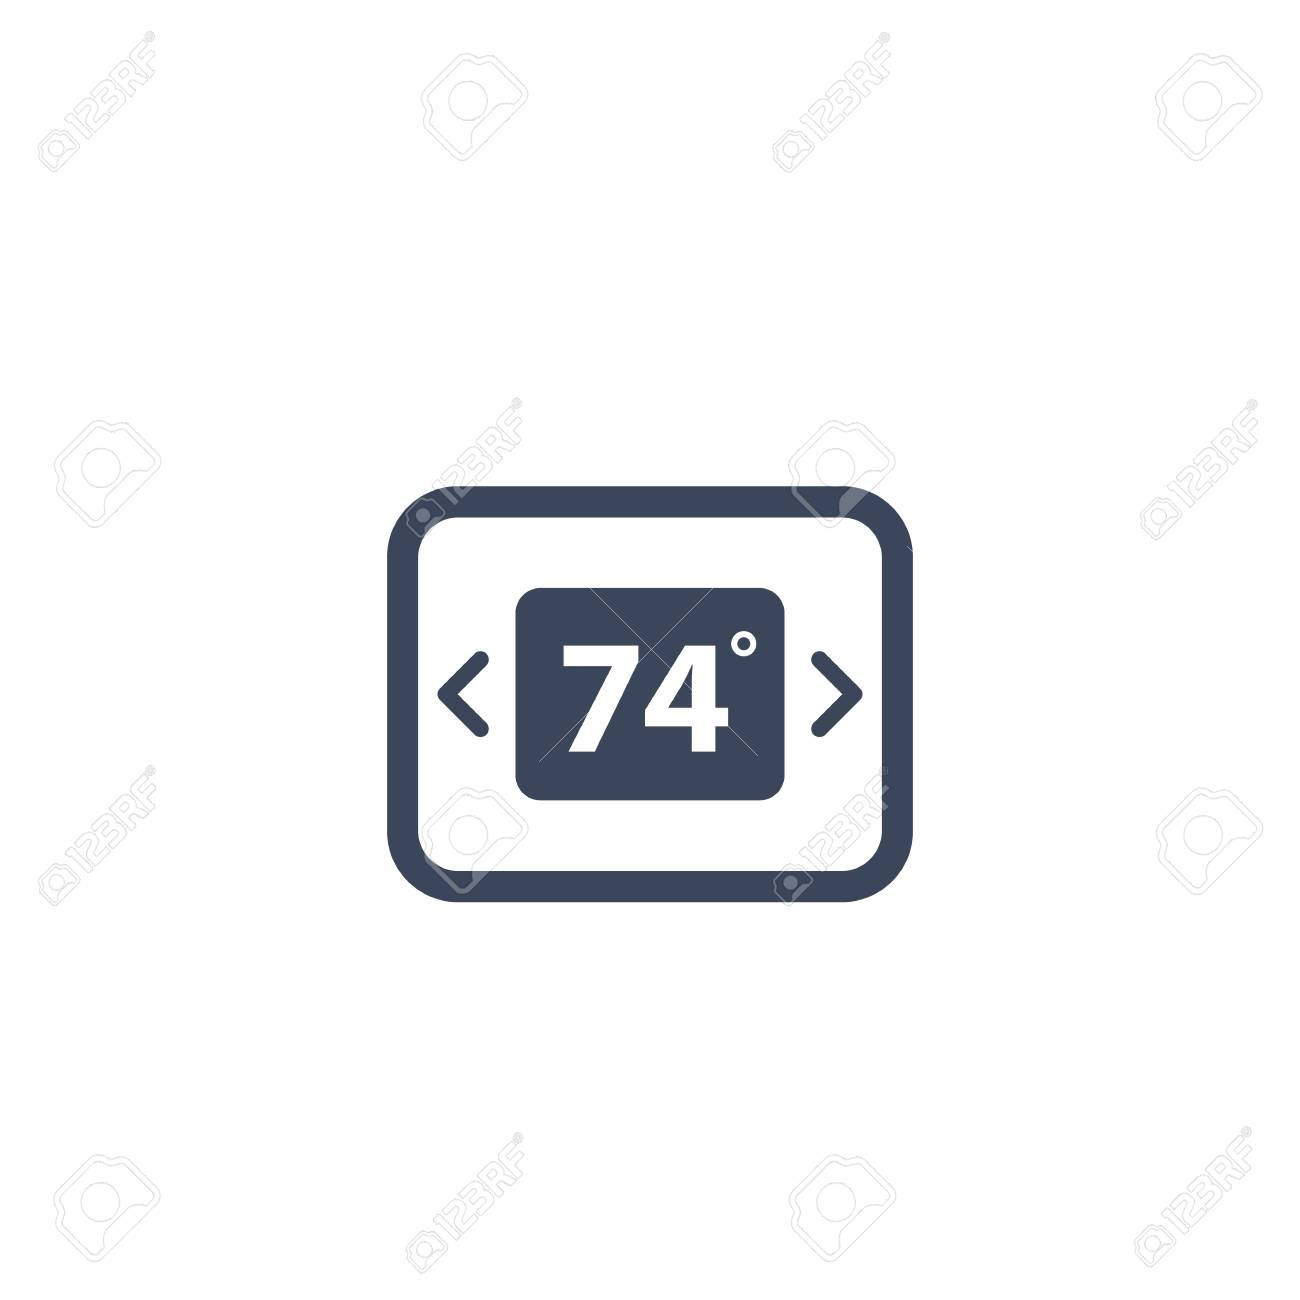 digital thermostat icon on white royalty free cliparts vectors and